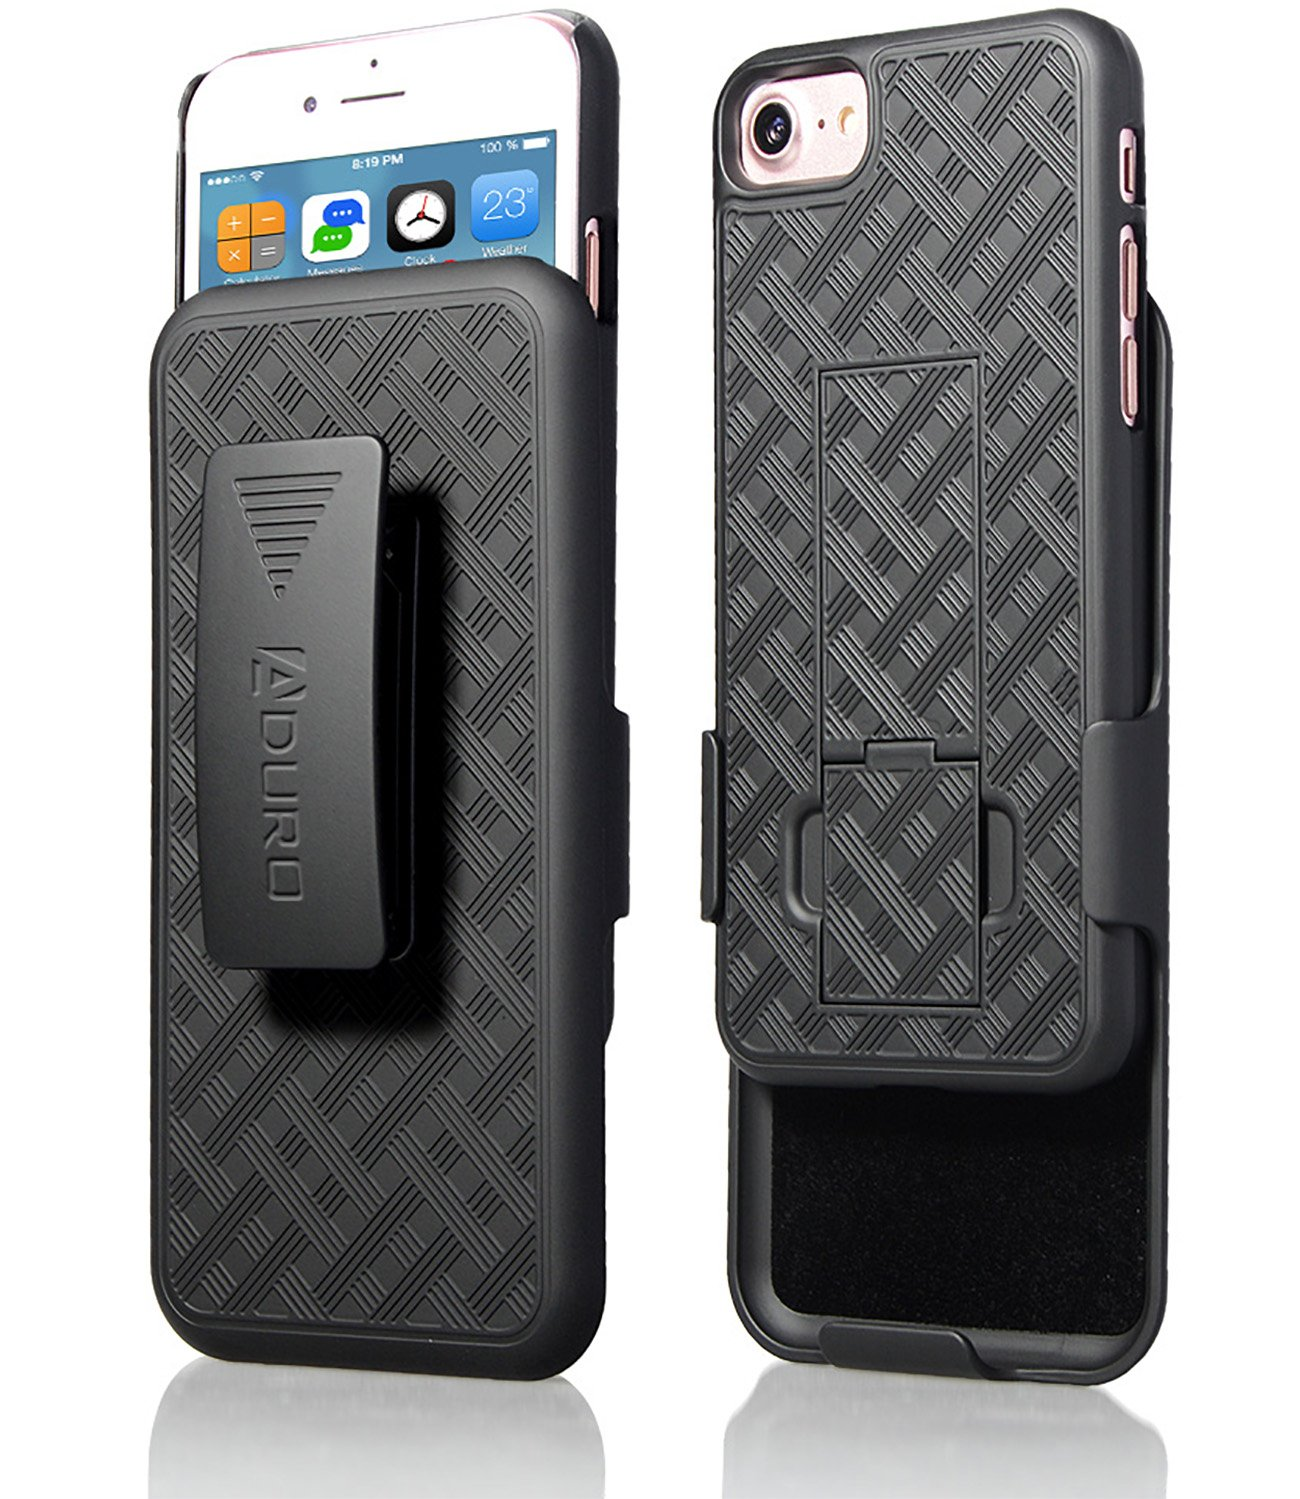 iPhone Holster Aduro Combo Built